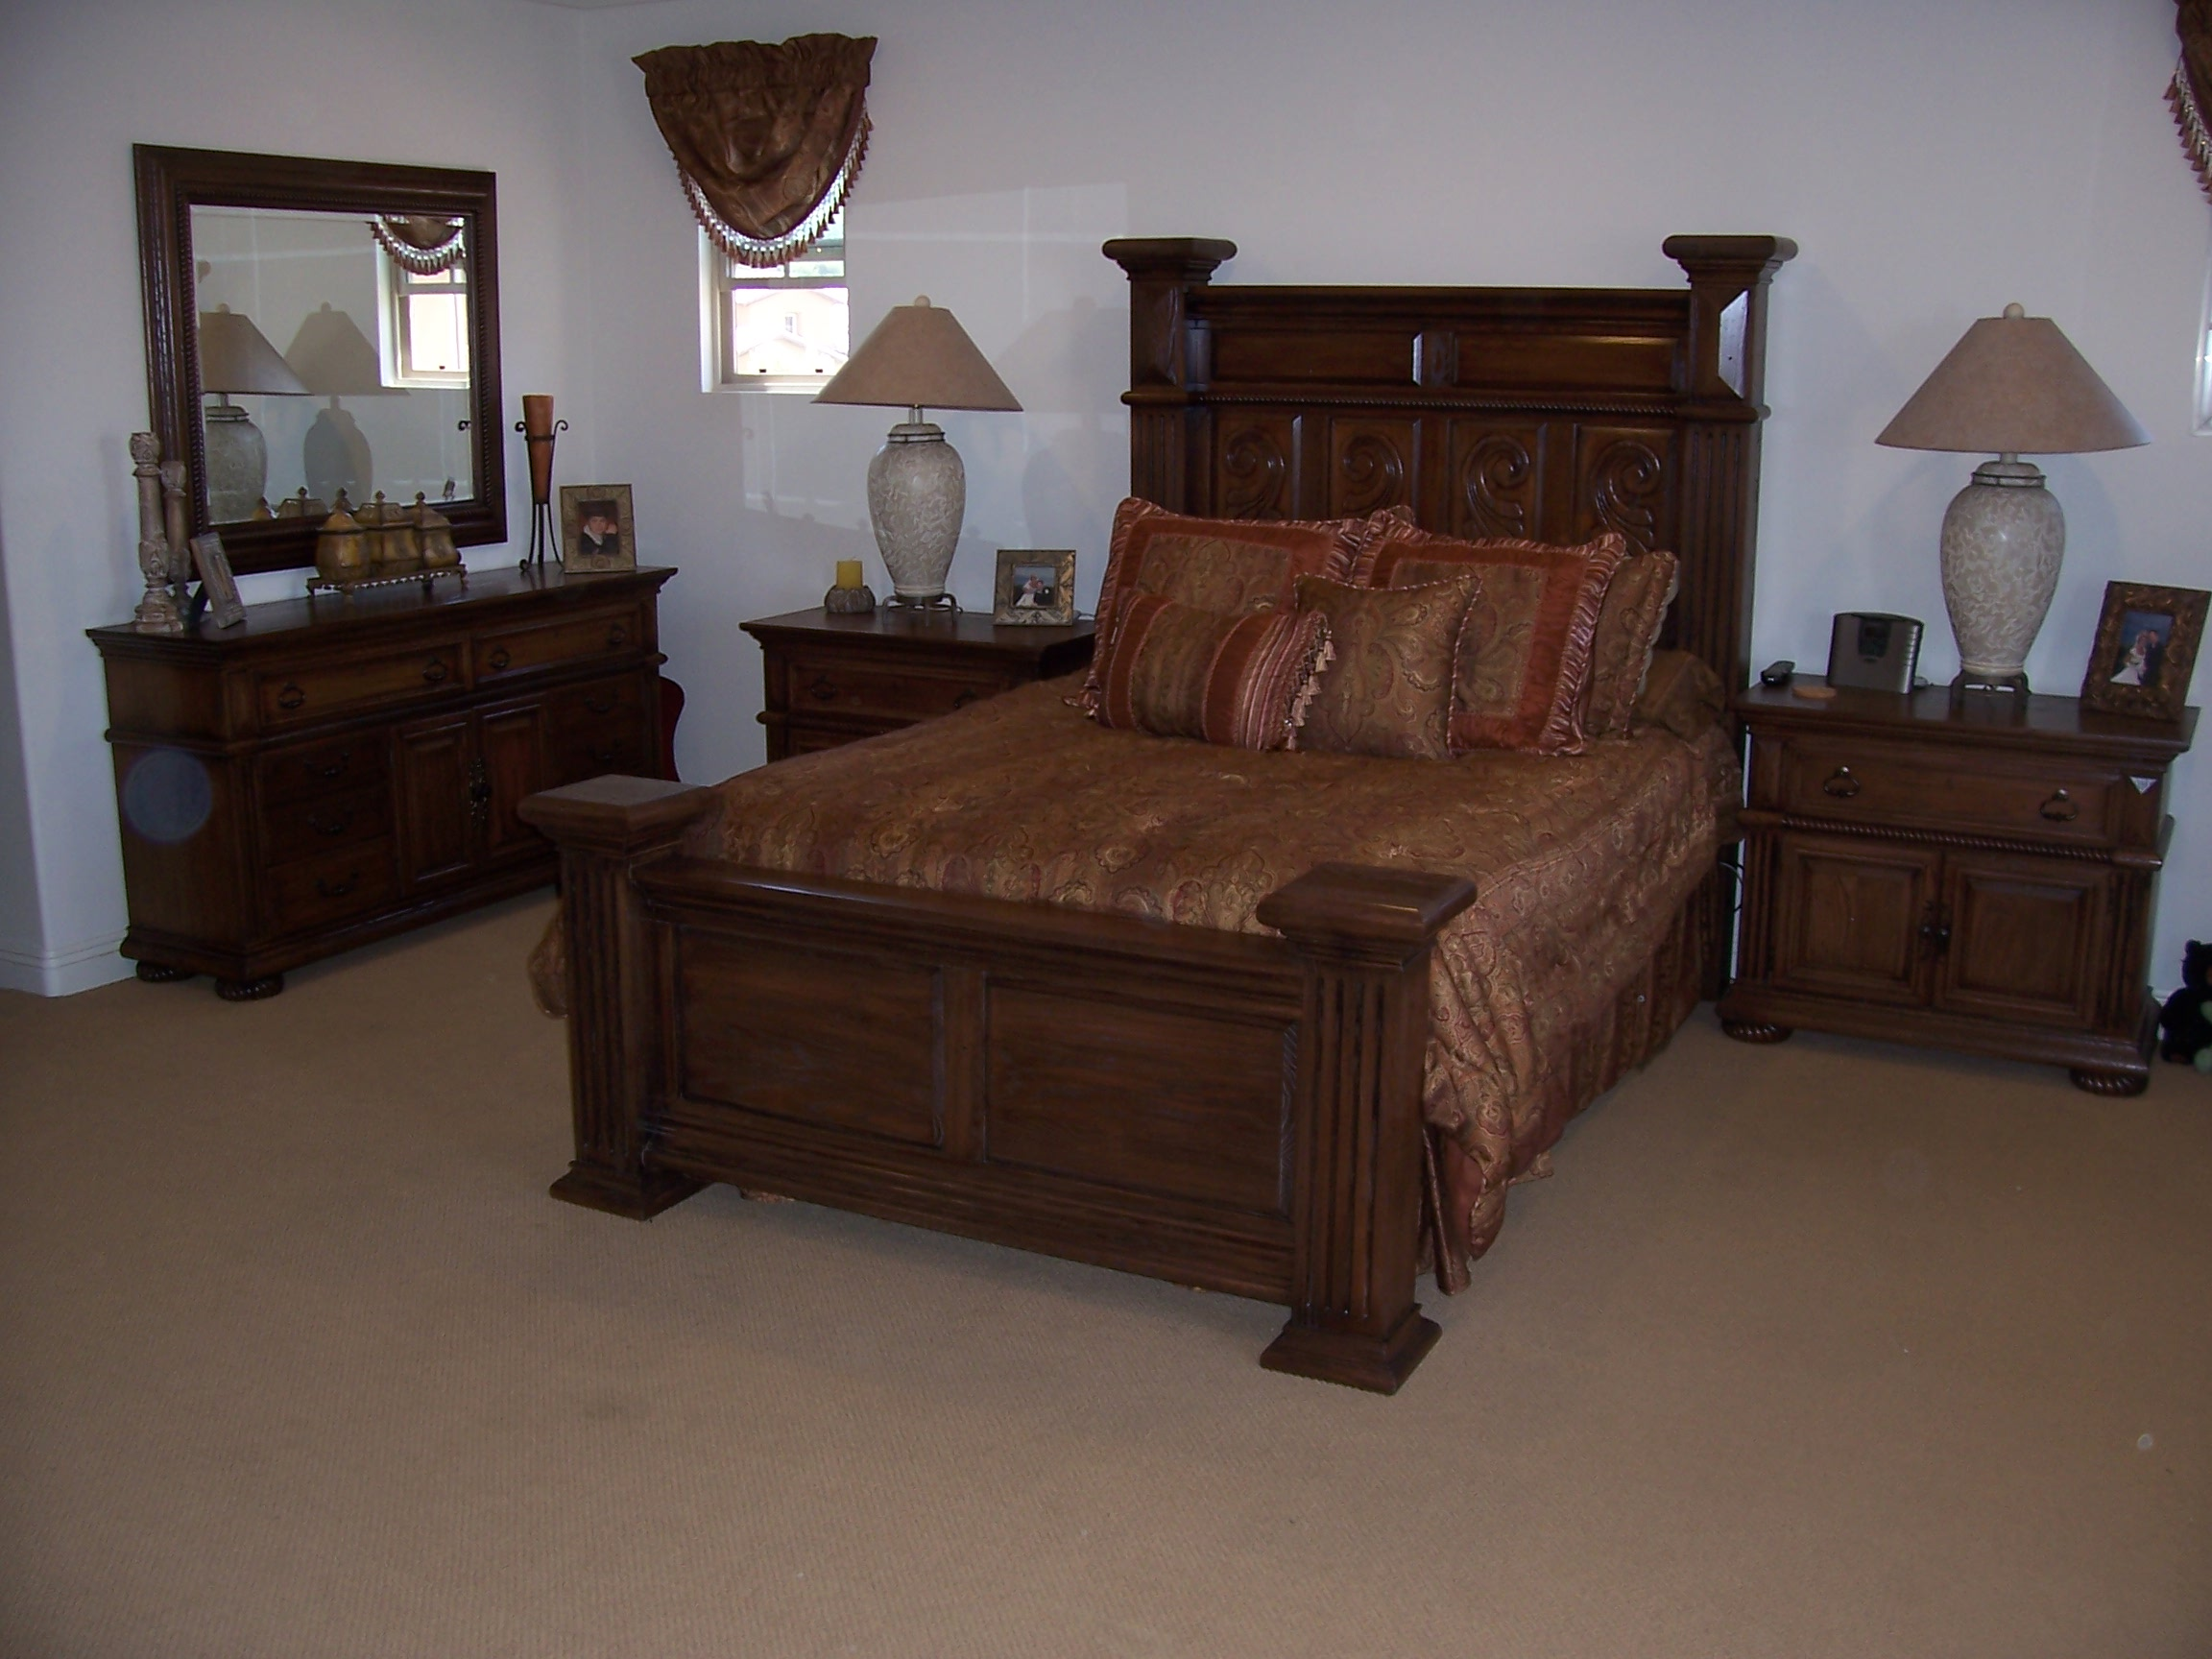 Furniture Refinishing : Furniture Repair Service : Furniture ...